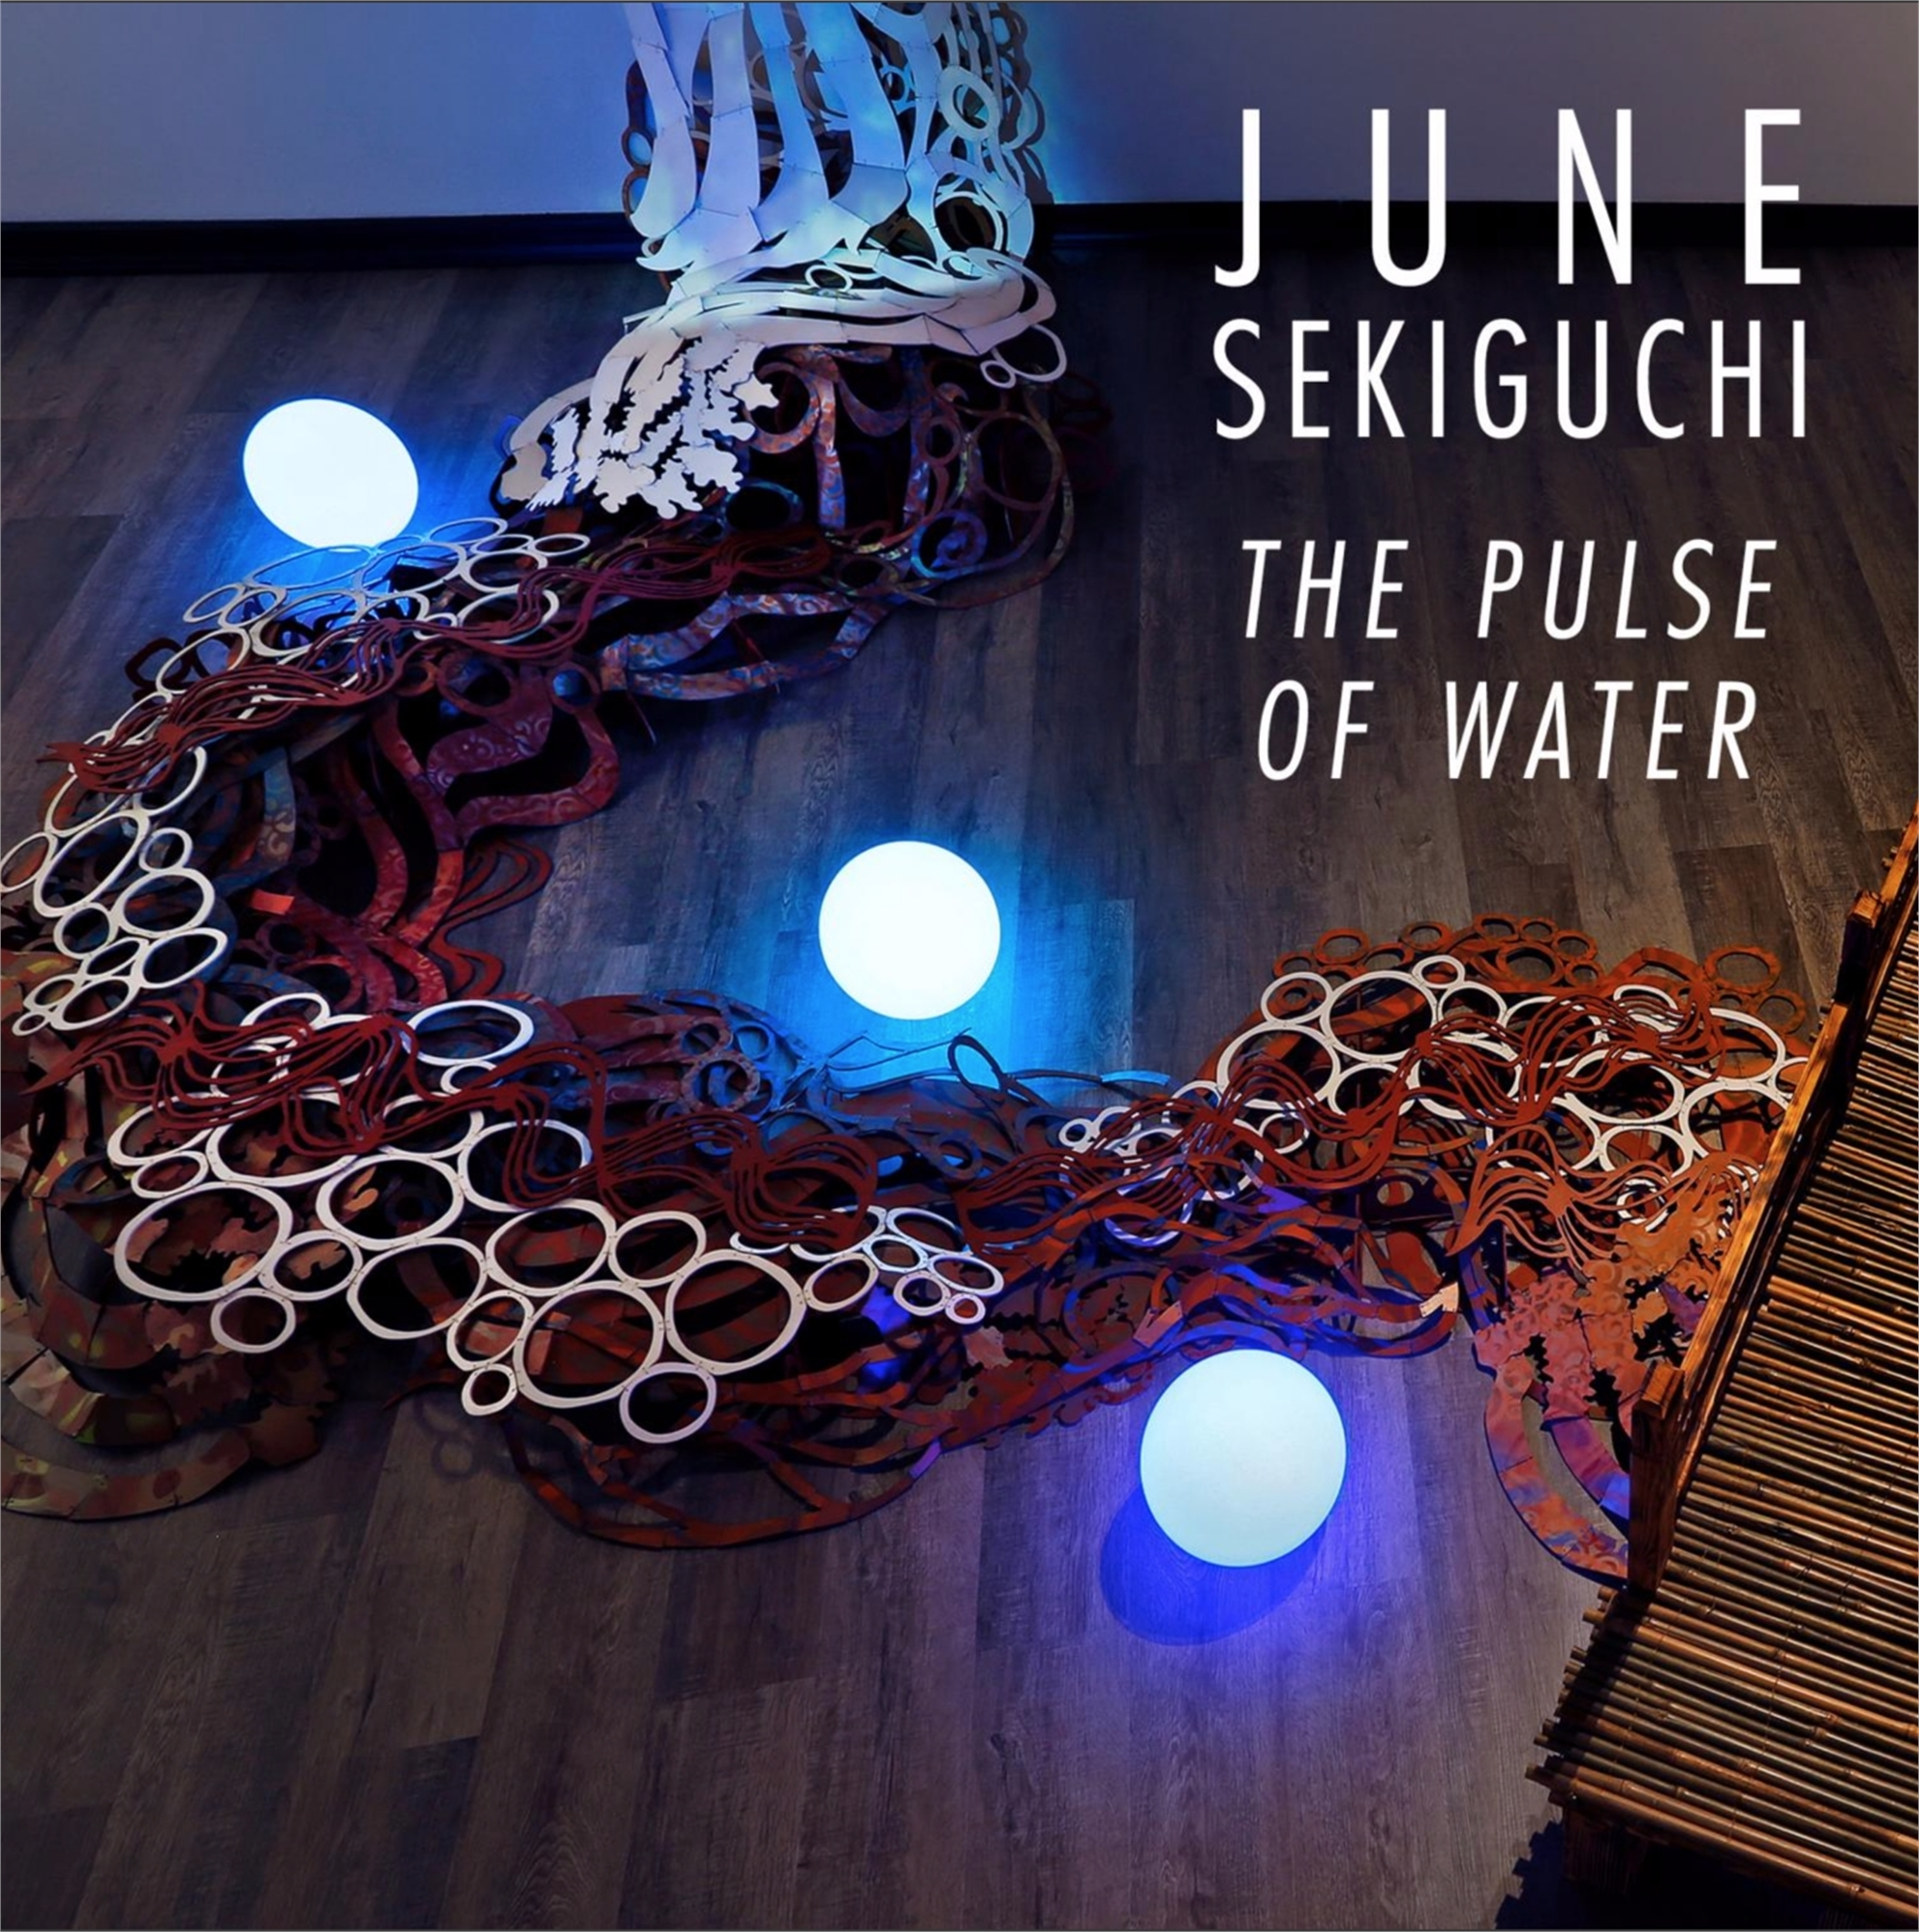 The Pulse of Water Exhibition Catalog by June Sekiguchi